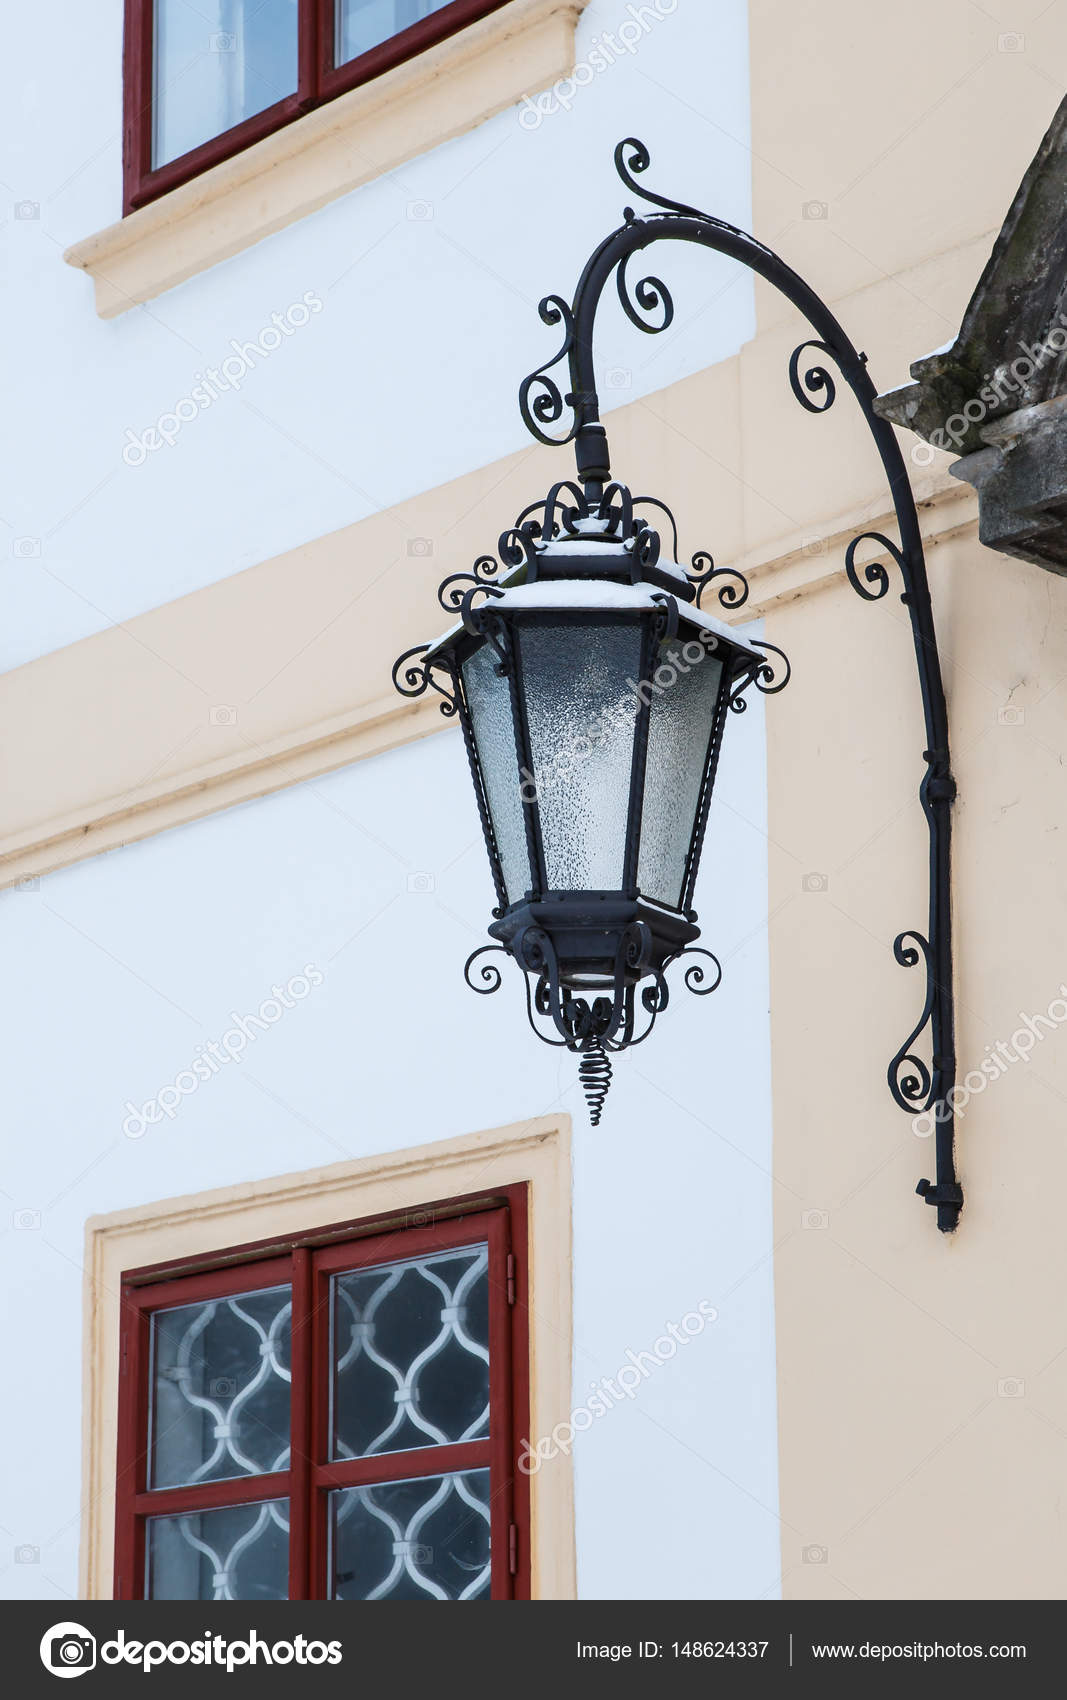 Gallery Of Lampe An Wand Foto Von Gatherina With Lampen An Der Wand